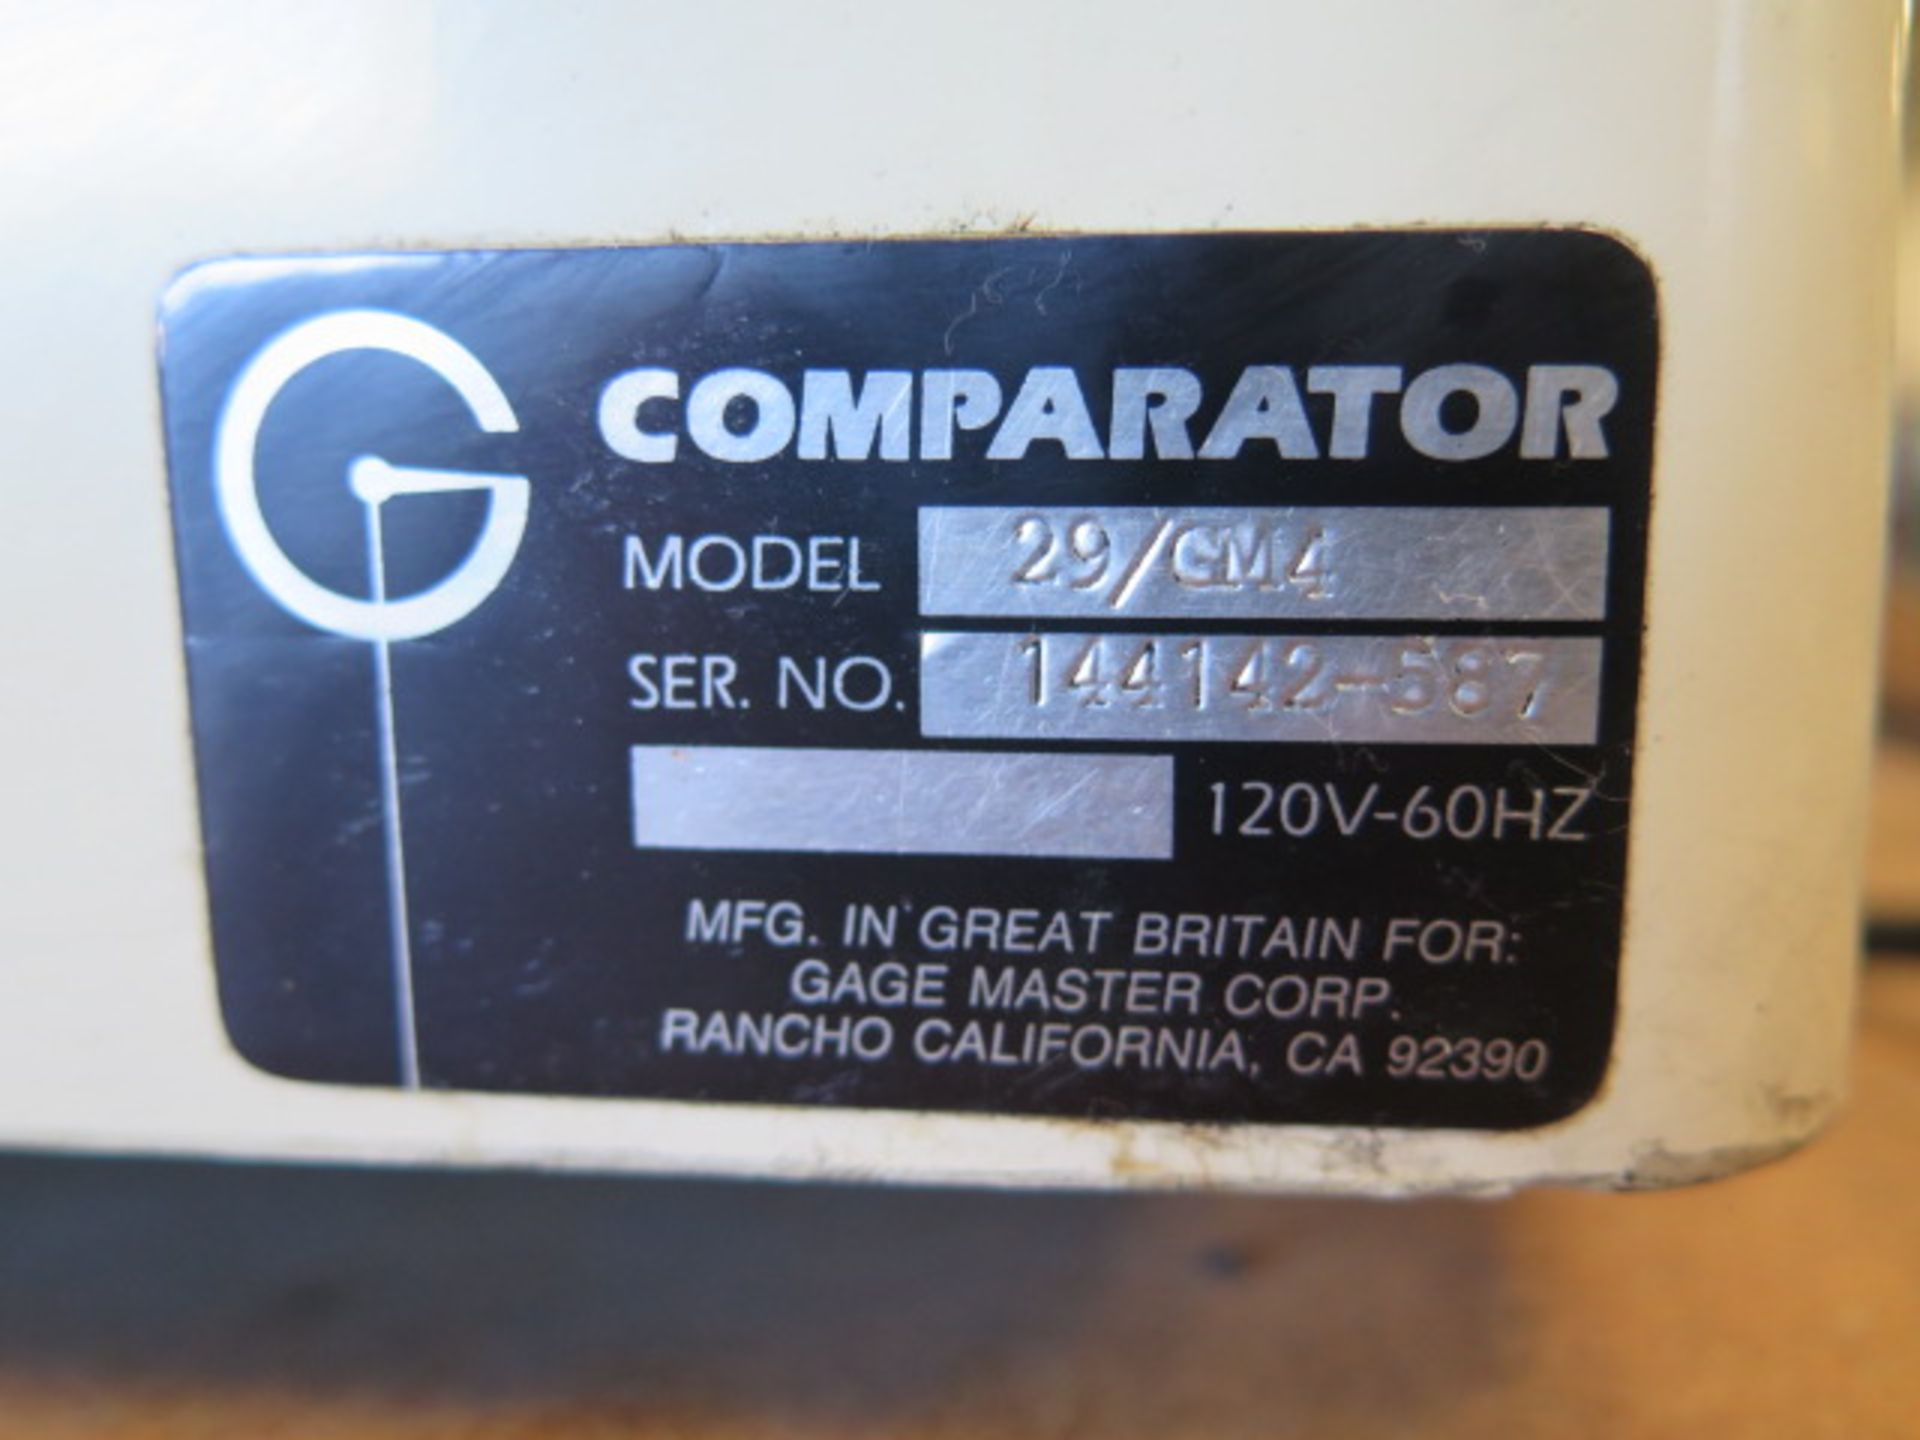 """Gage Master Series 20 13"""" Optical Comparator w/ Gage Master GM4 DRO, Dig Angular Readout, SOLD AS IS - Image 10 of 10"""